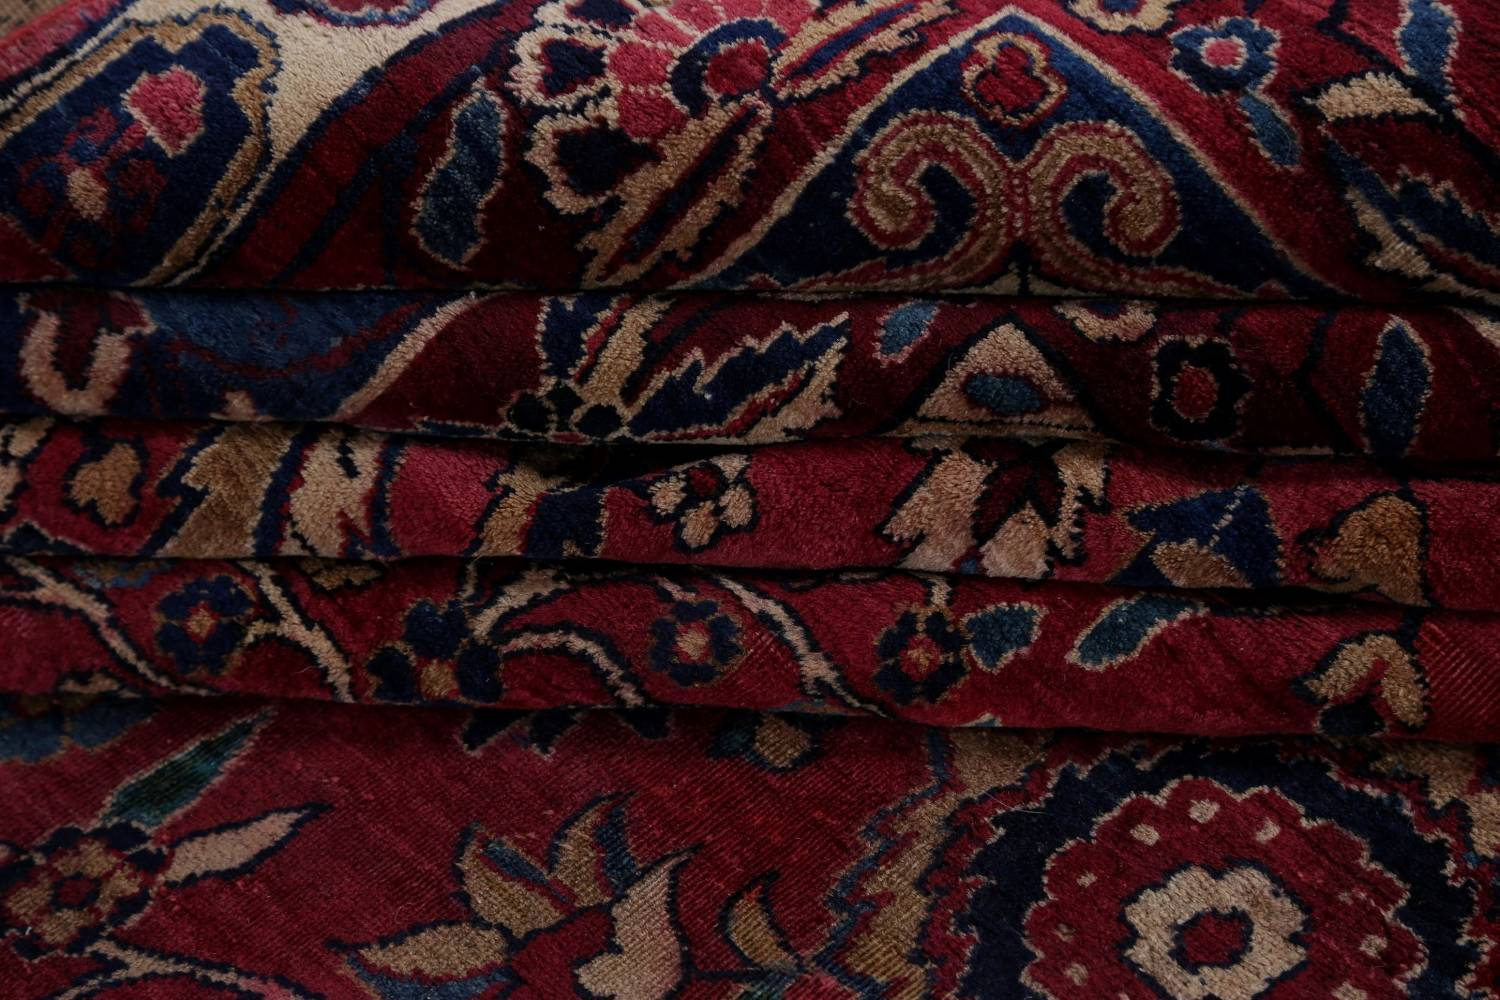 Pre-1900 Antique Floral Sultanabad Persian Hand-Knotted 12x18 Wool Rug image 25